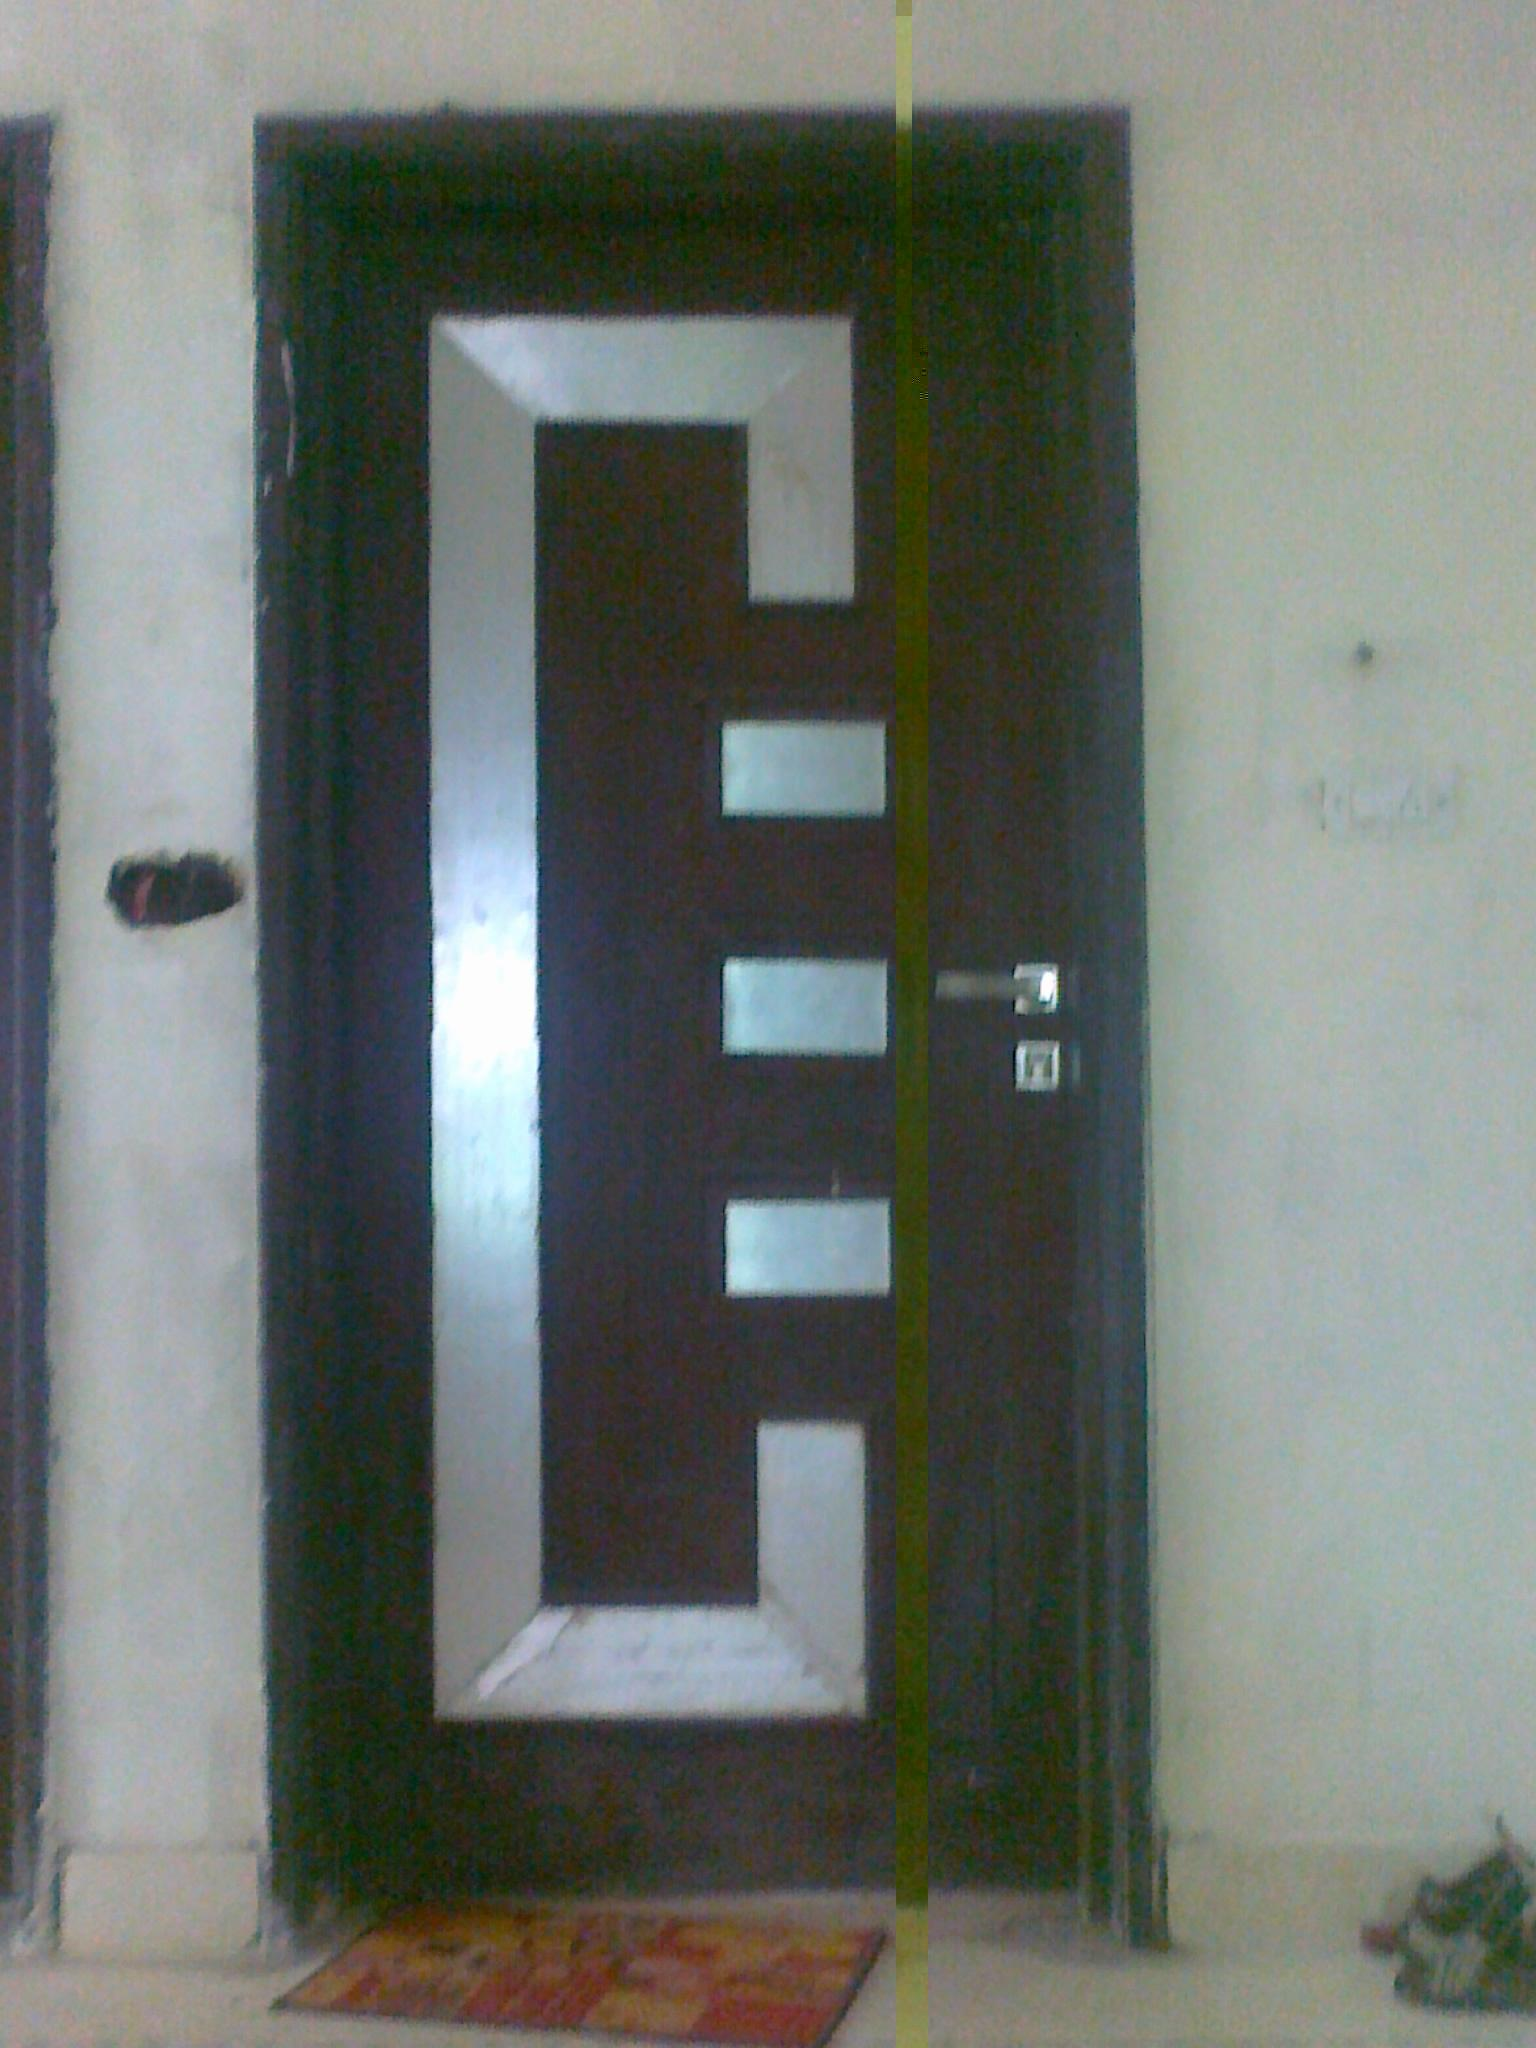 Door design gharexpert for Office main door design